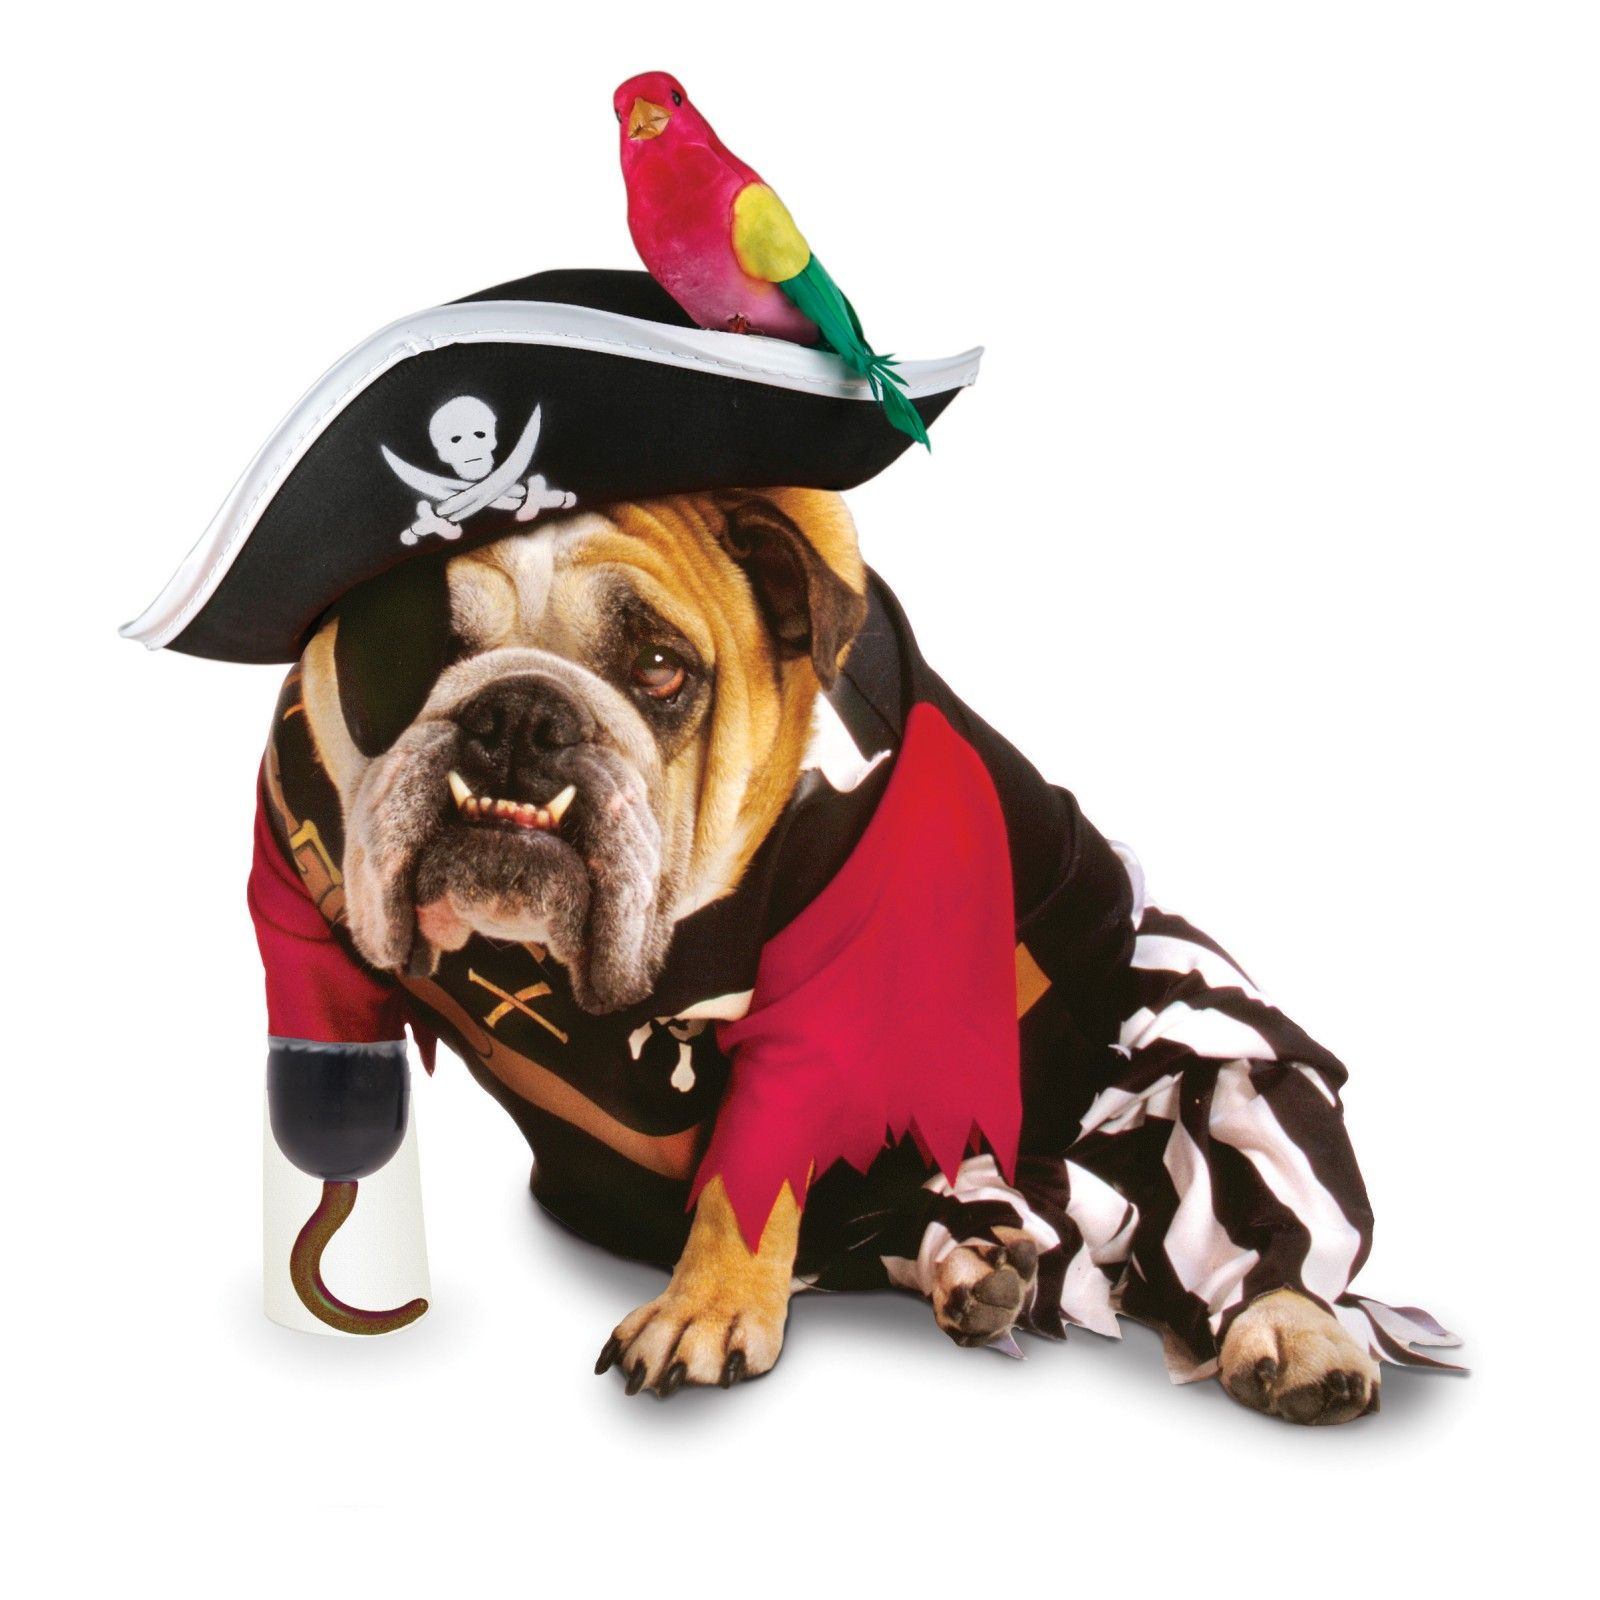 Pirate Dog Costume Branson S Next Costume The Eye Patch Will